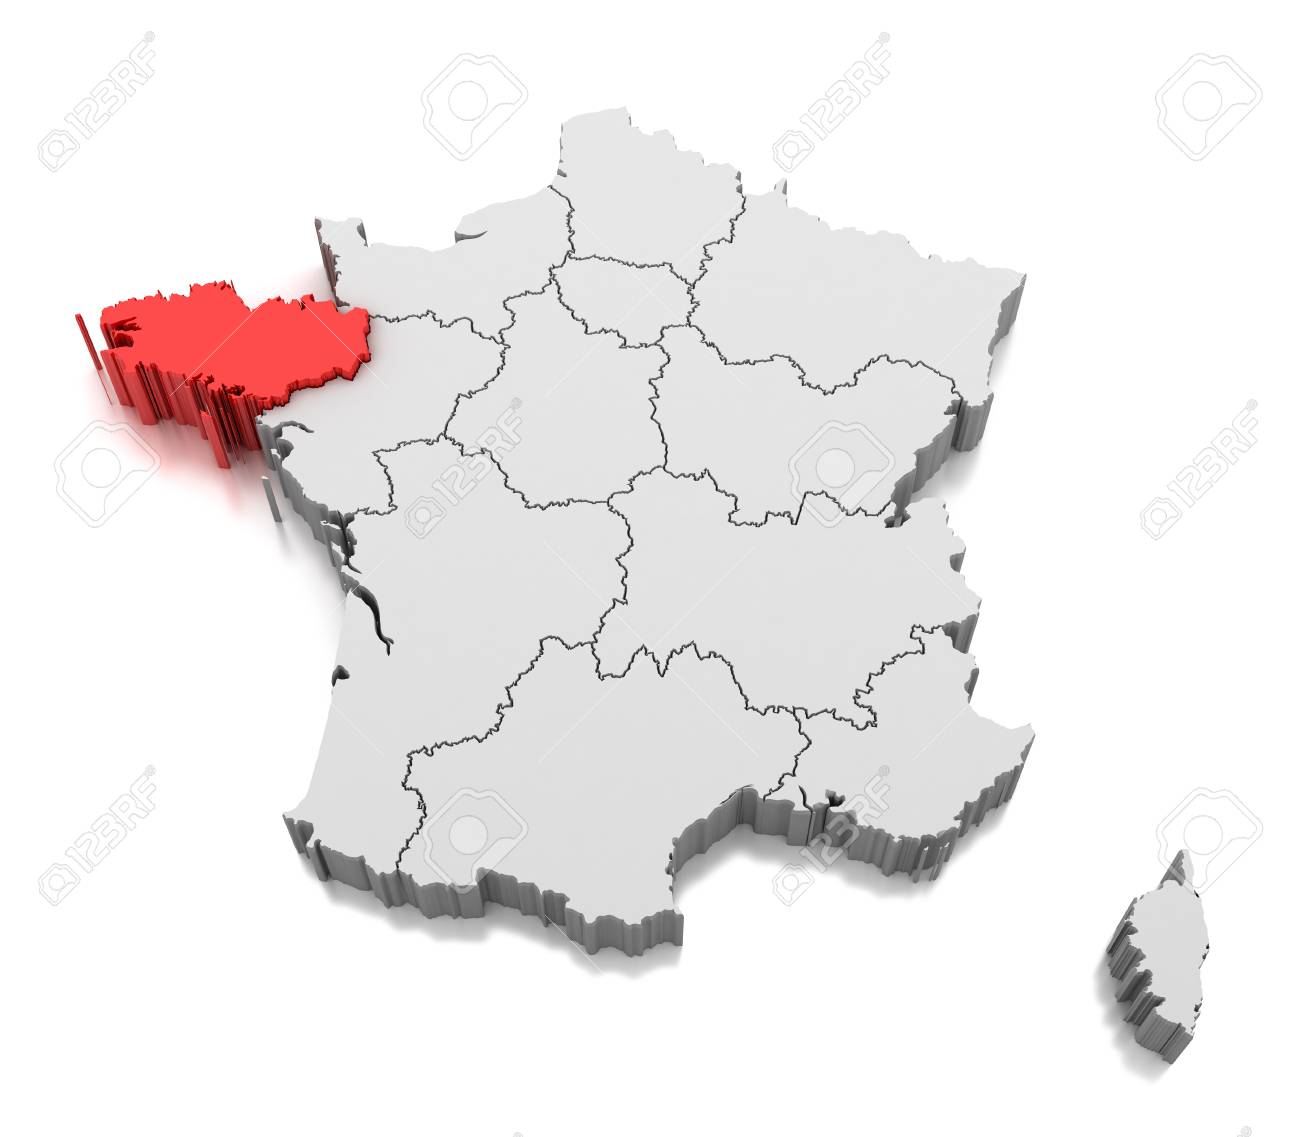 Map of Brittany region, France - 110374009